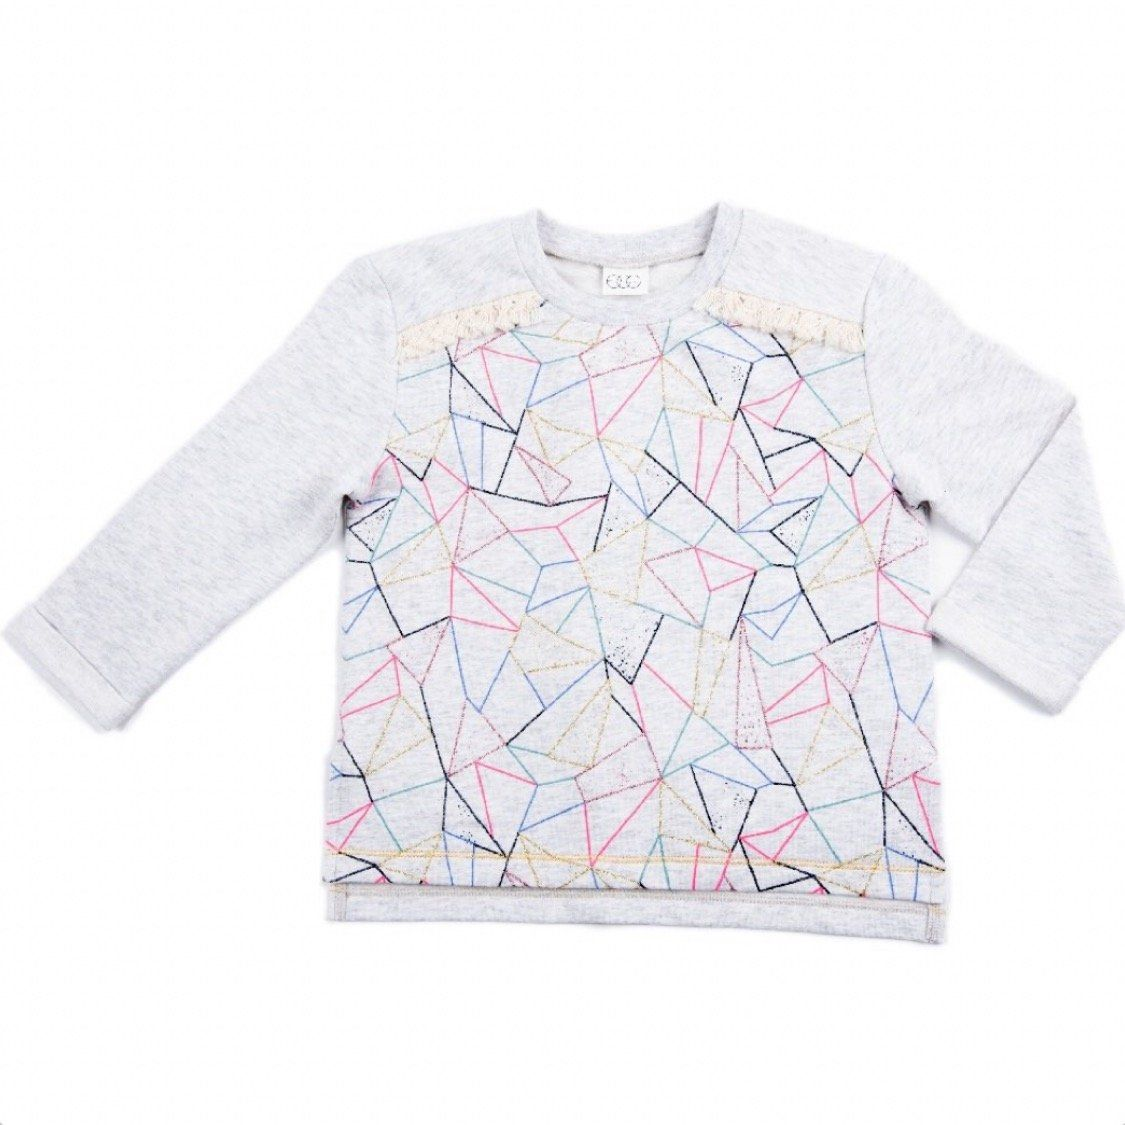 egg - Juliana Pullover Sweatshirt egg by Susan Lazar